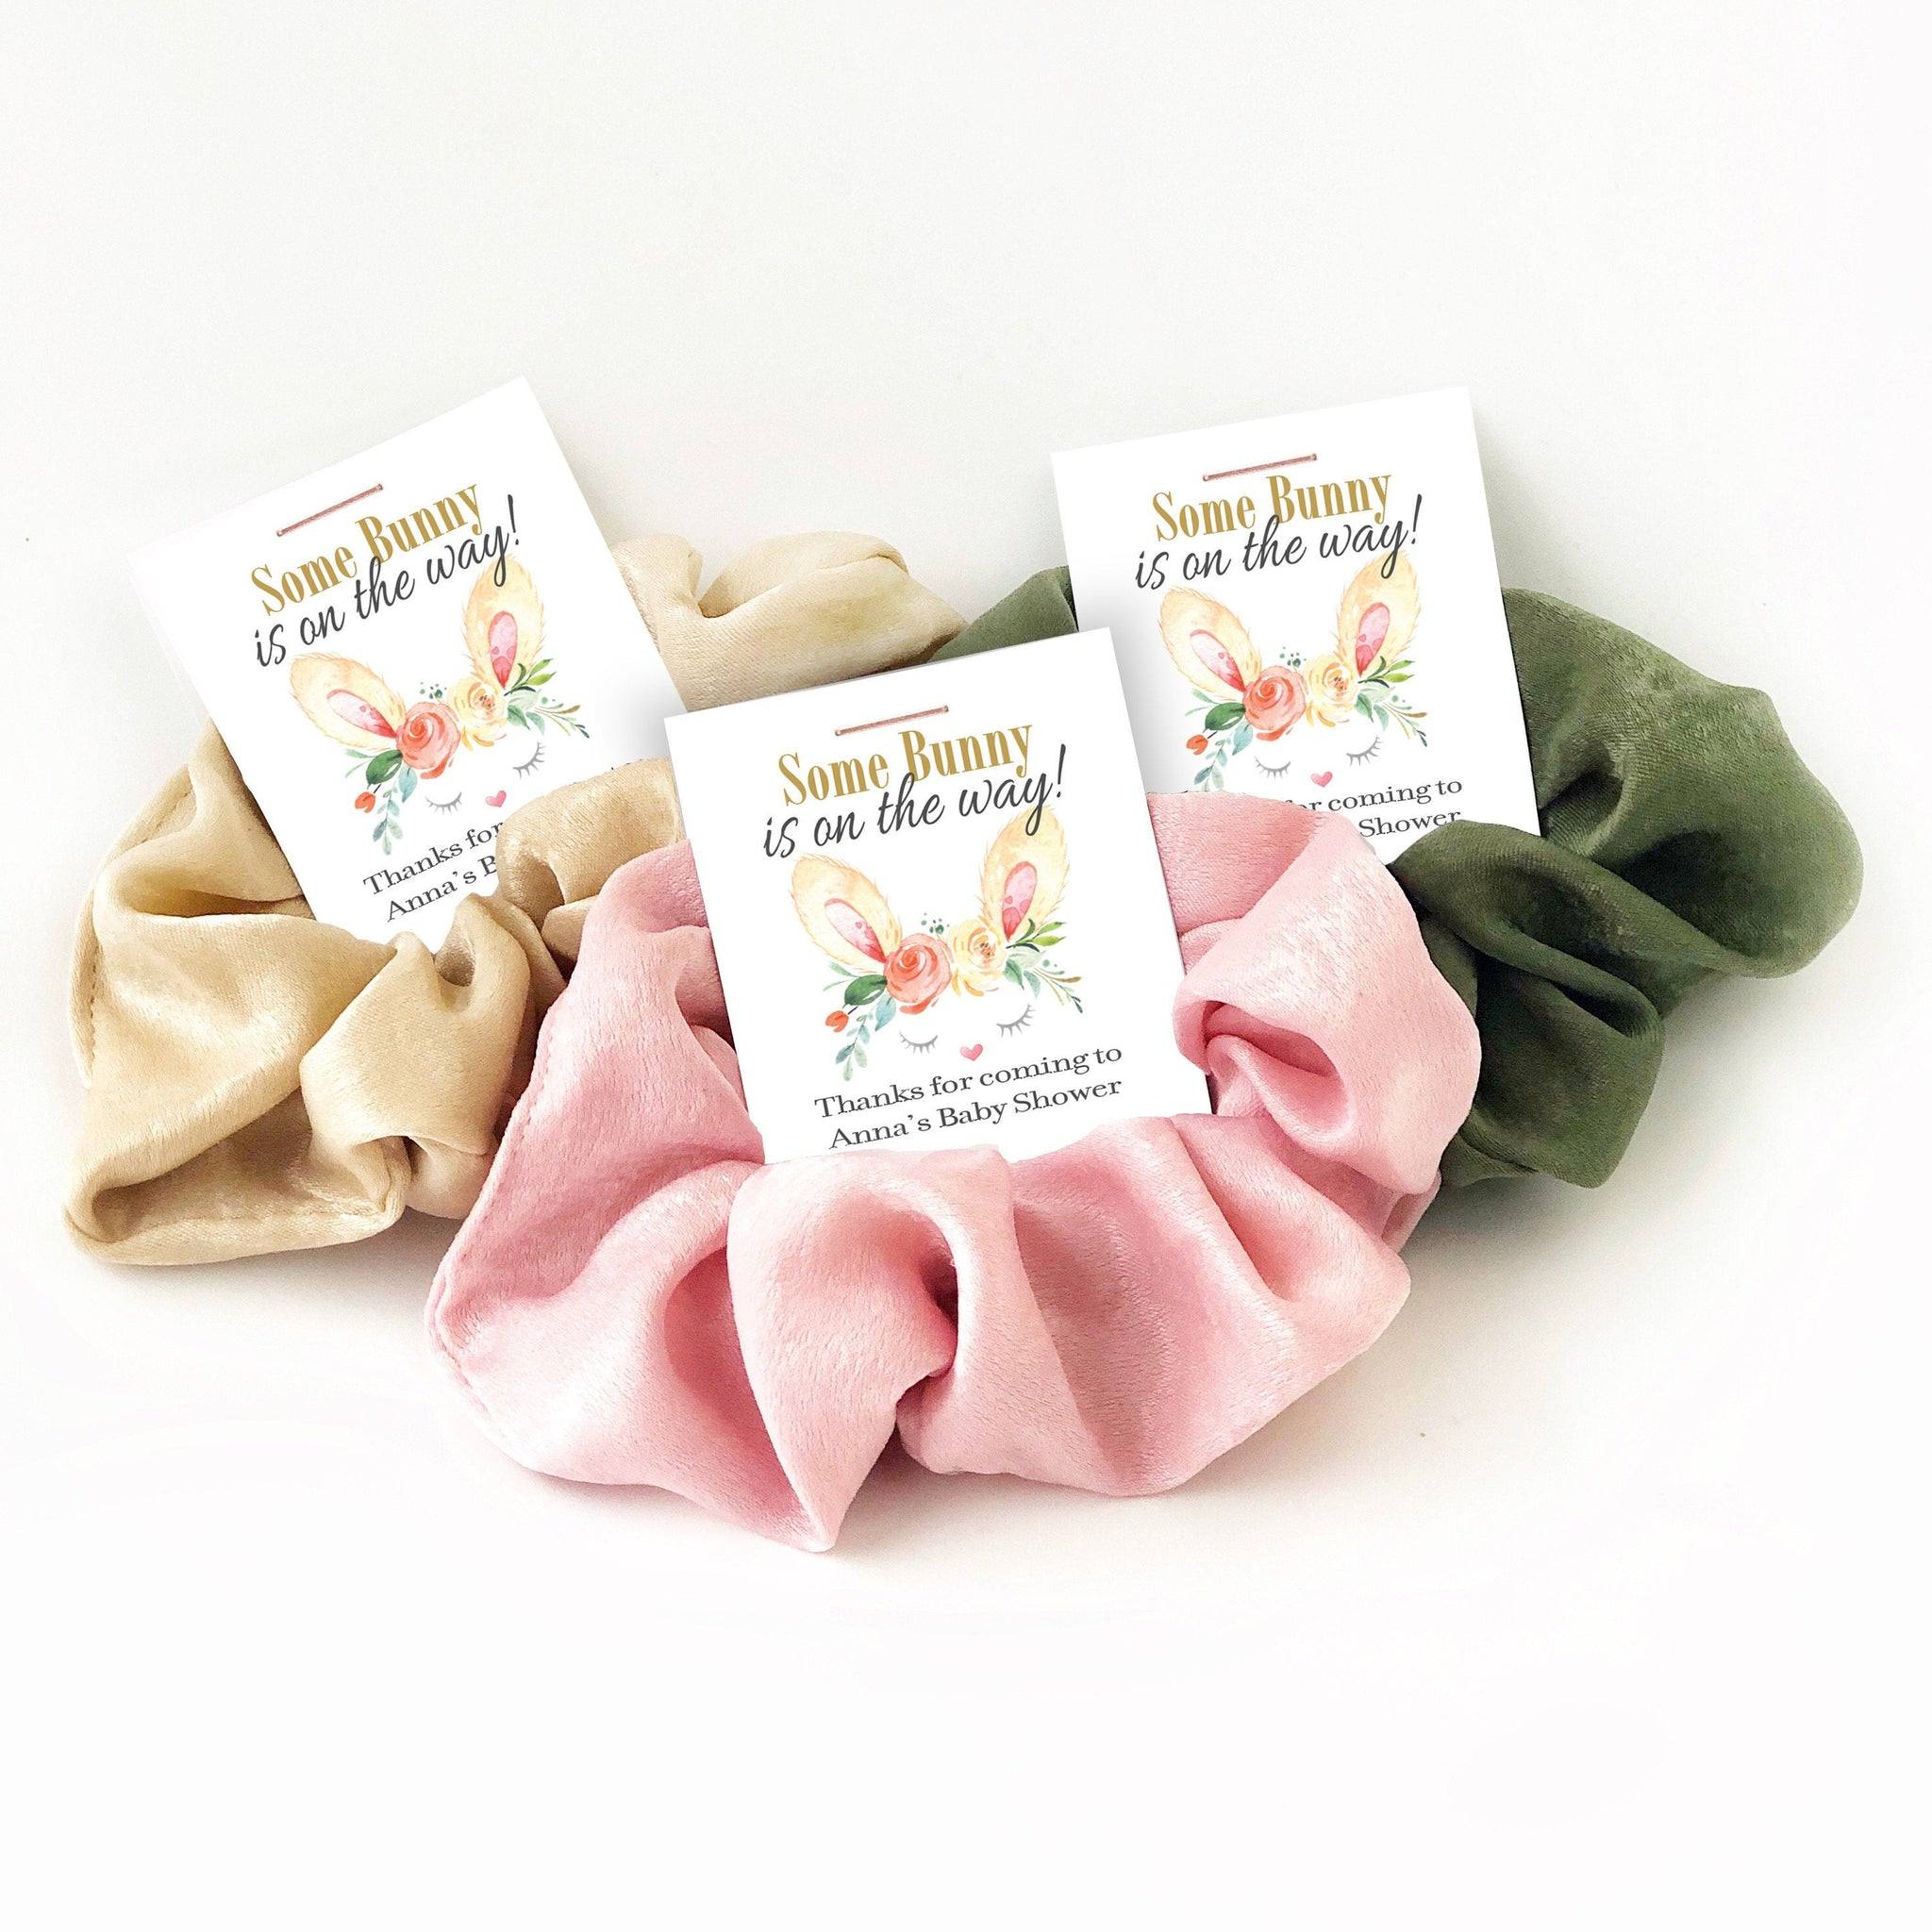 Bunny Baby Shower Favors, Hair Scrunchies - B100 - @PlumPolkaDot